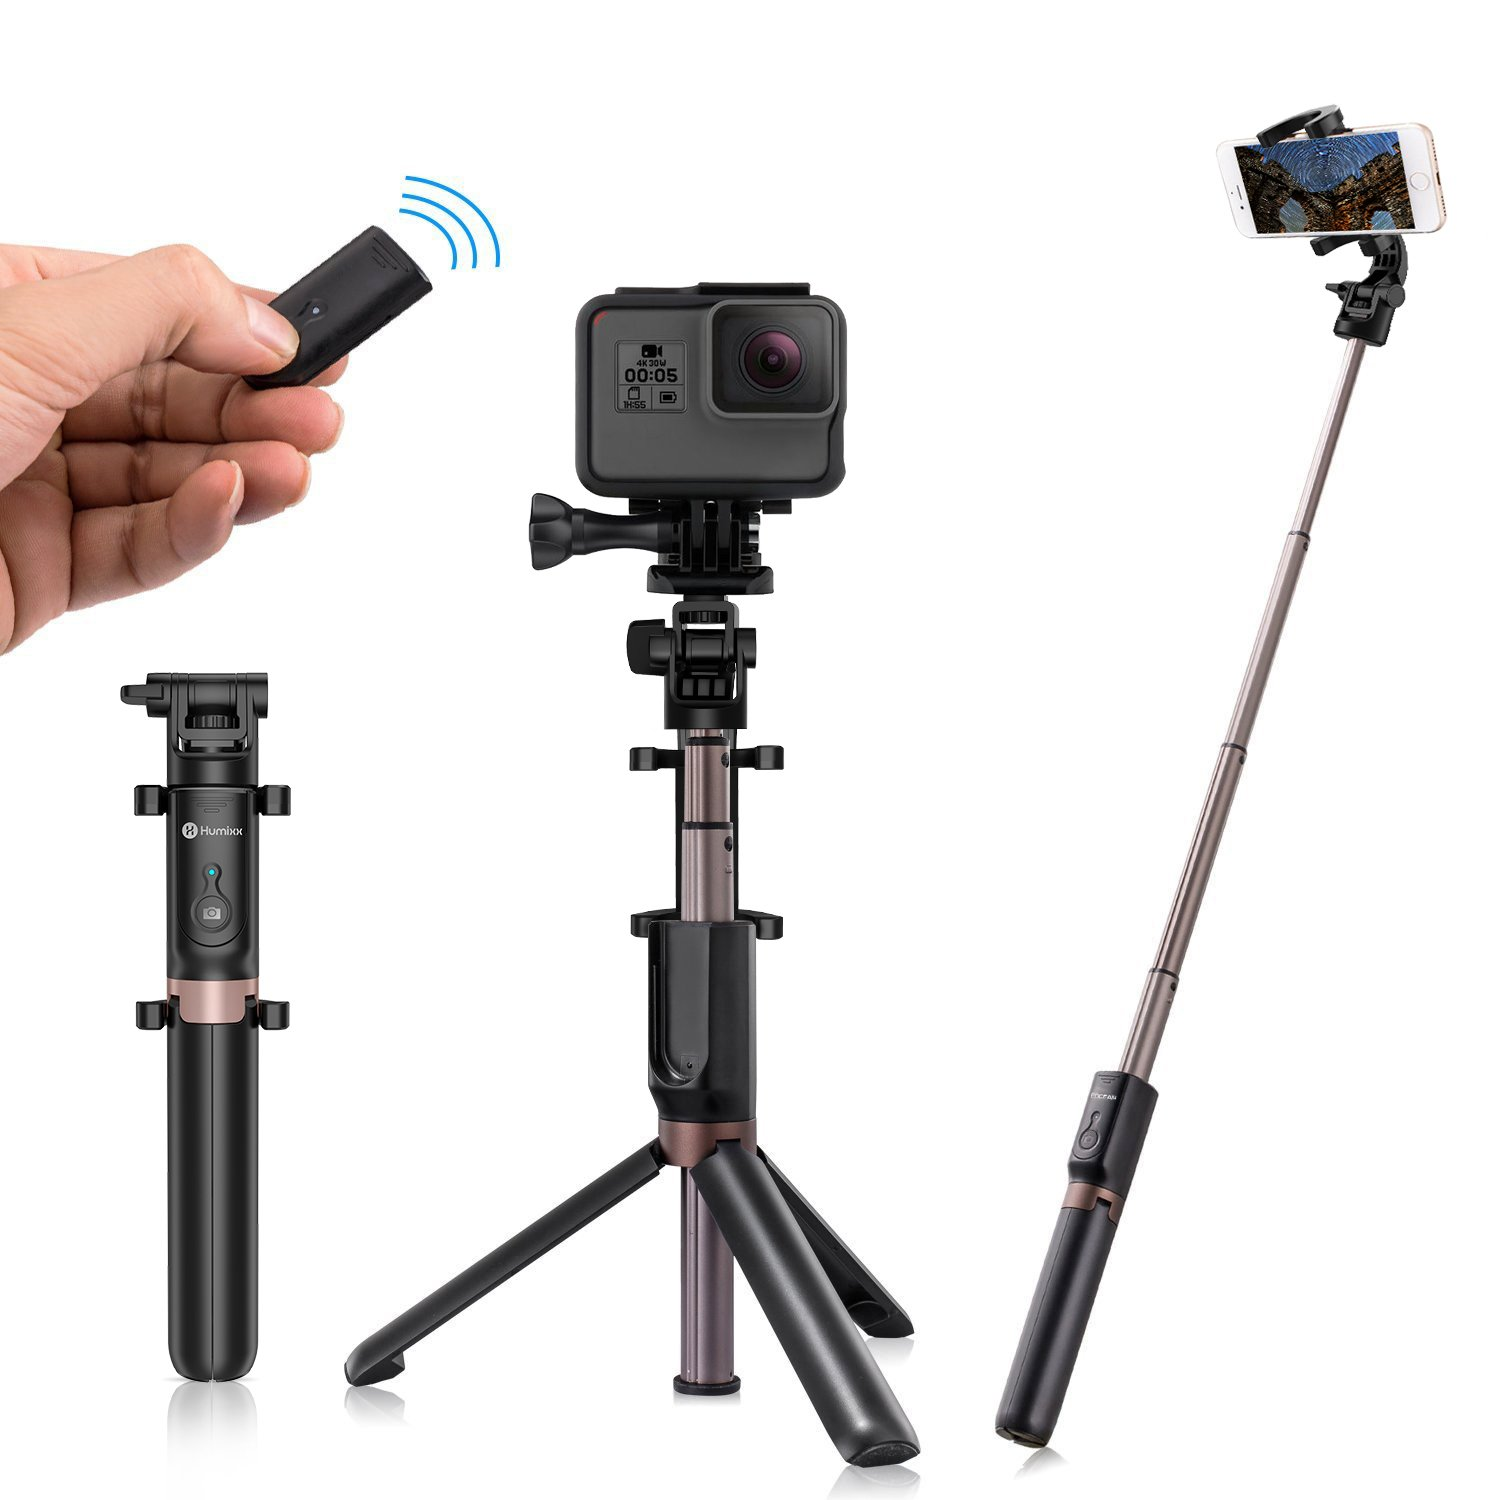 Humixx 2-in-1 Selfie Stick Wireless Remote Controlled Tripod Widely Compatible with IOS/Android Smartphones, Go Pro and More Action Cameras, Best Partner for Podcast/Selfie Live and Facetime